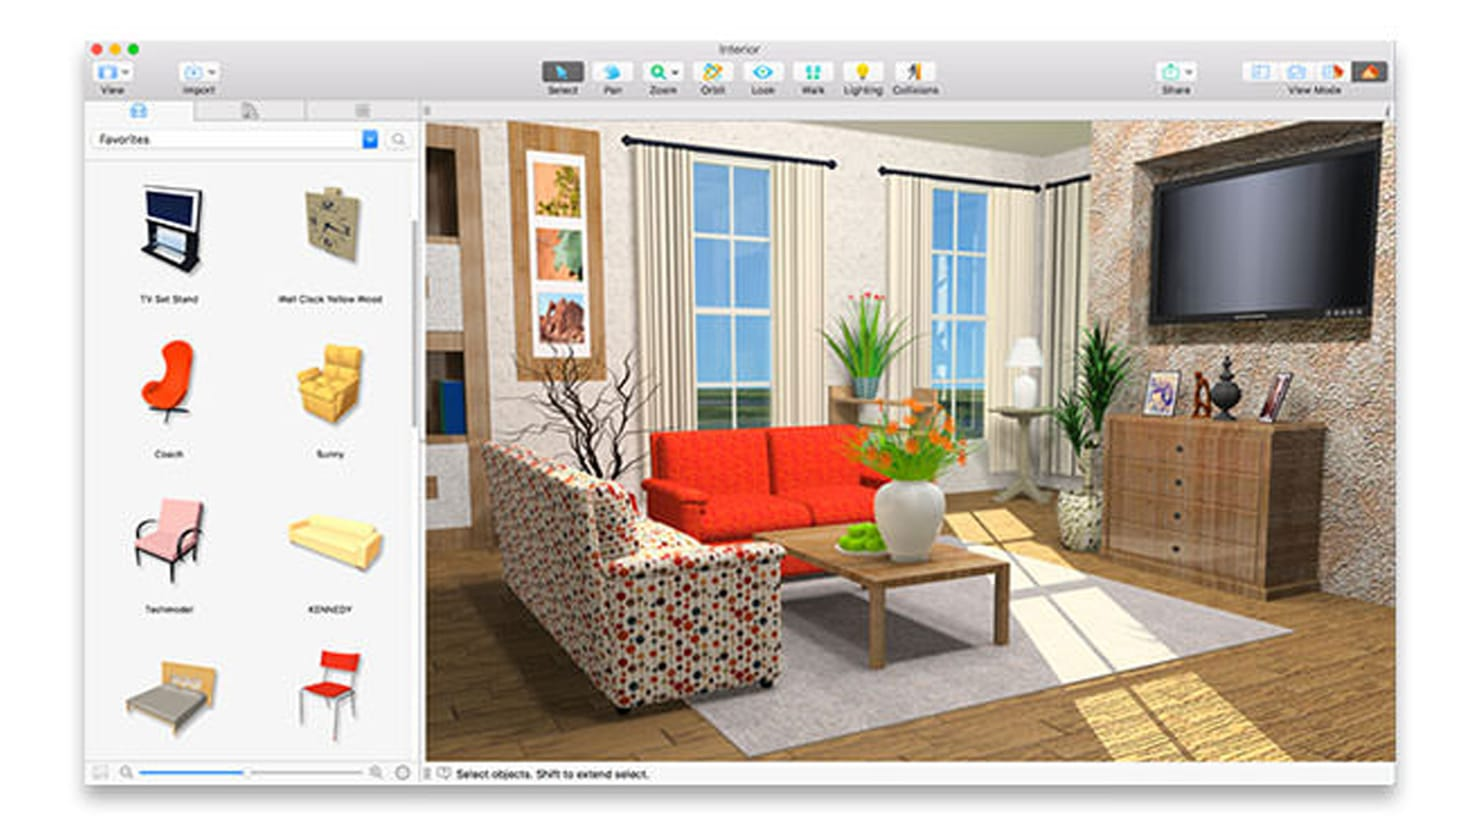 This App That Helps You Visualize Home Redesigns for 64% Off